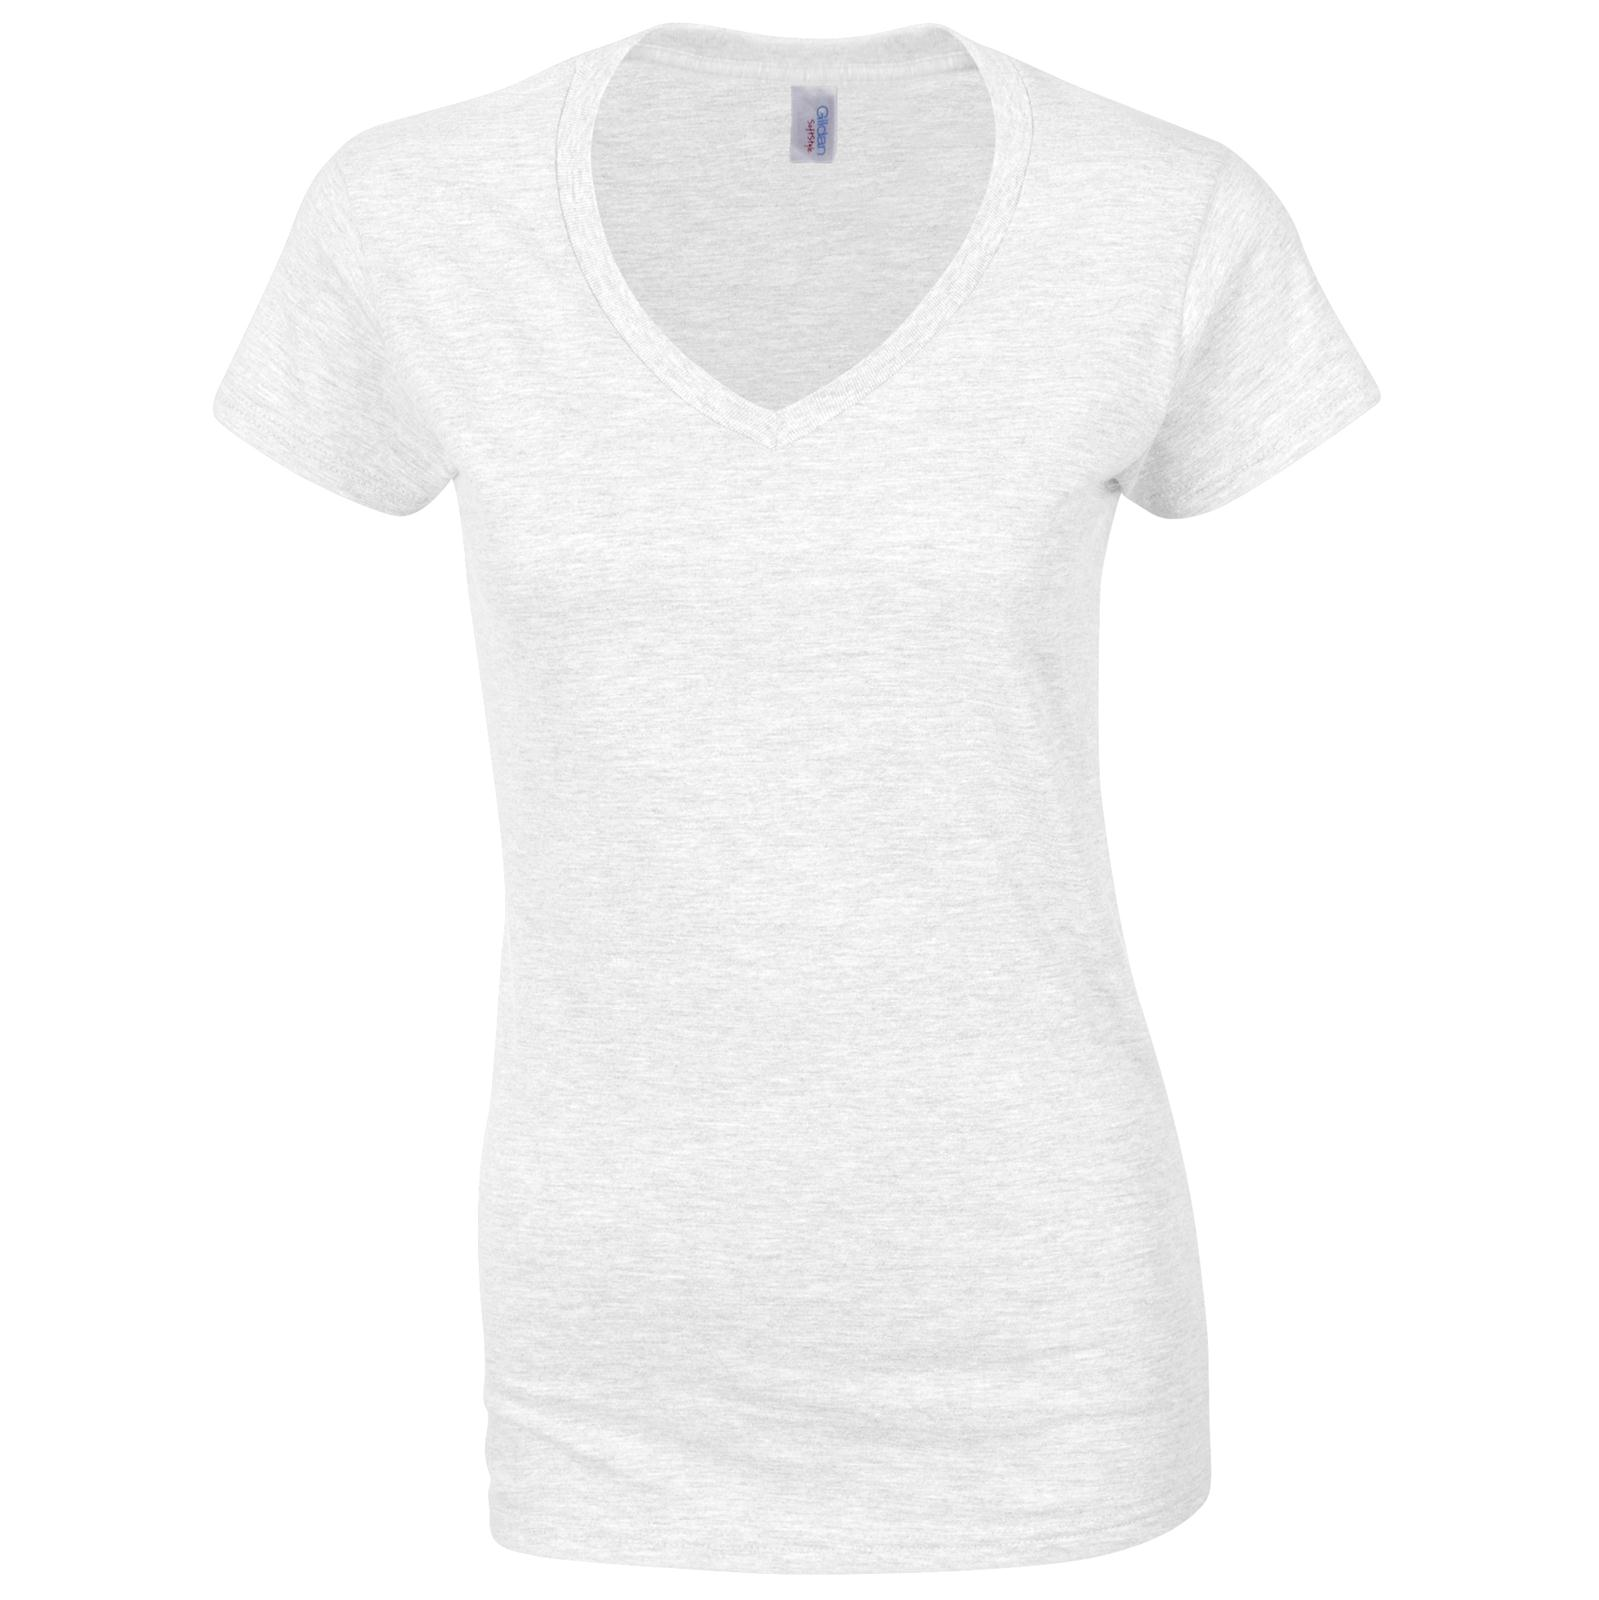 dac4f67a8362 New GILDAN Womens Ladies Soft Cotton Fitted V Neck T Shirt in 9 ...